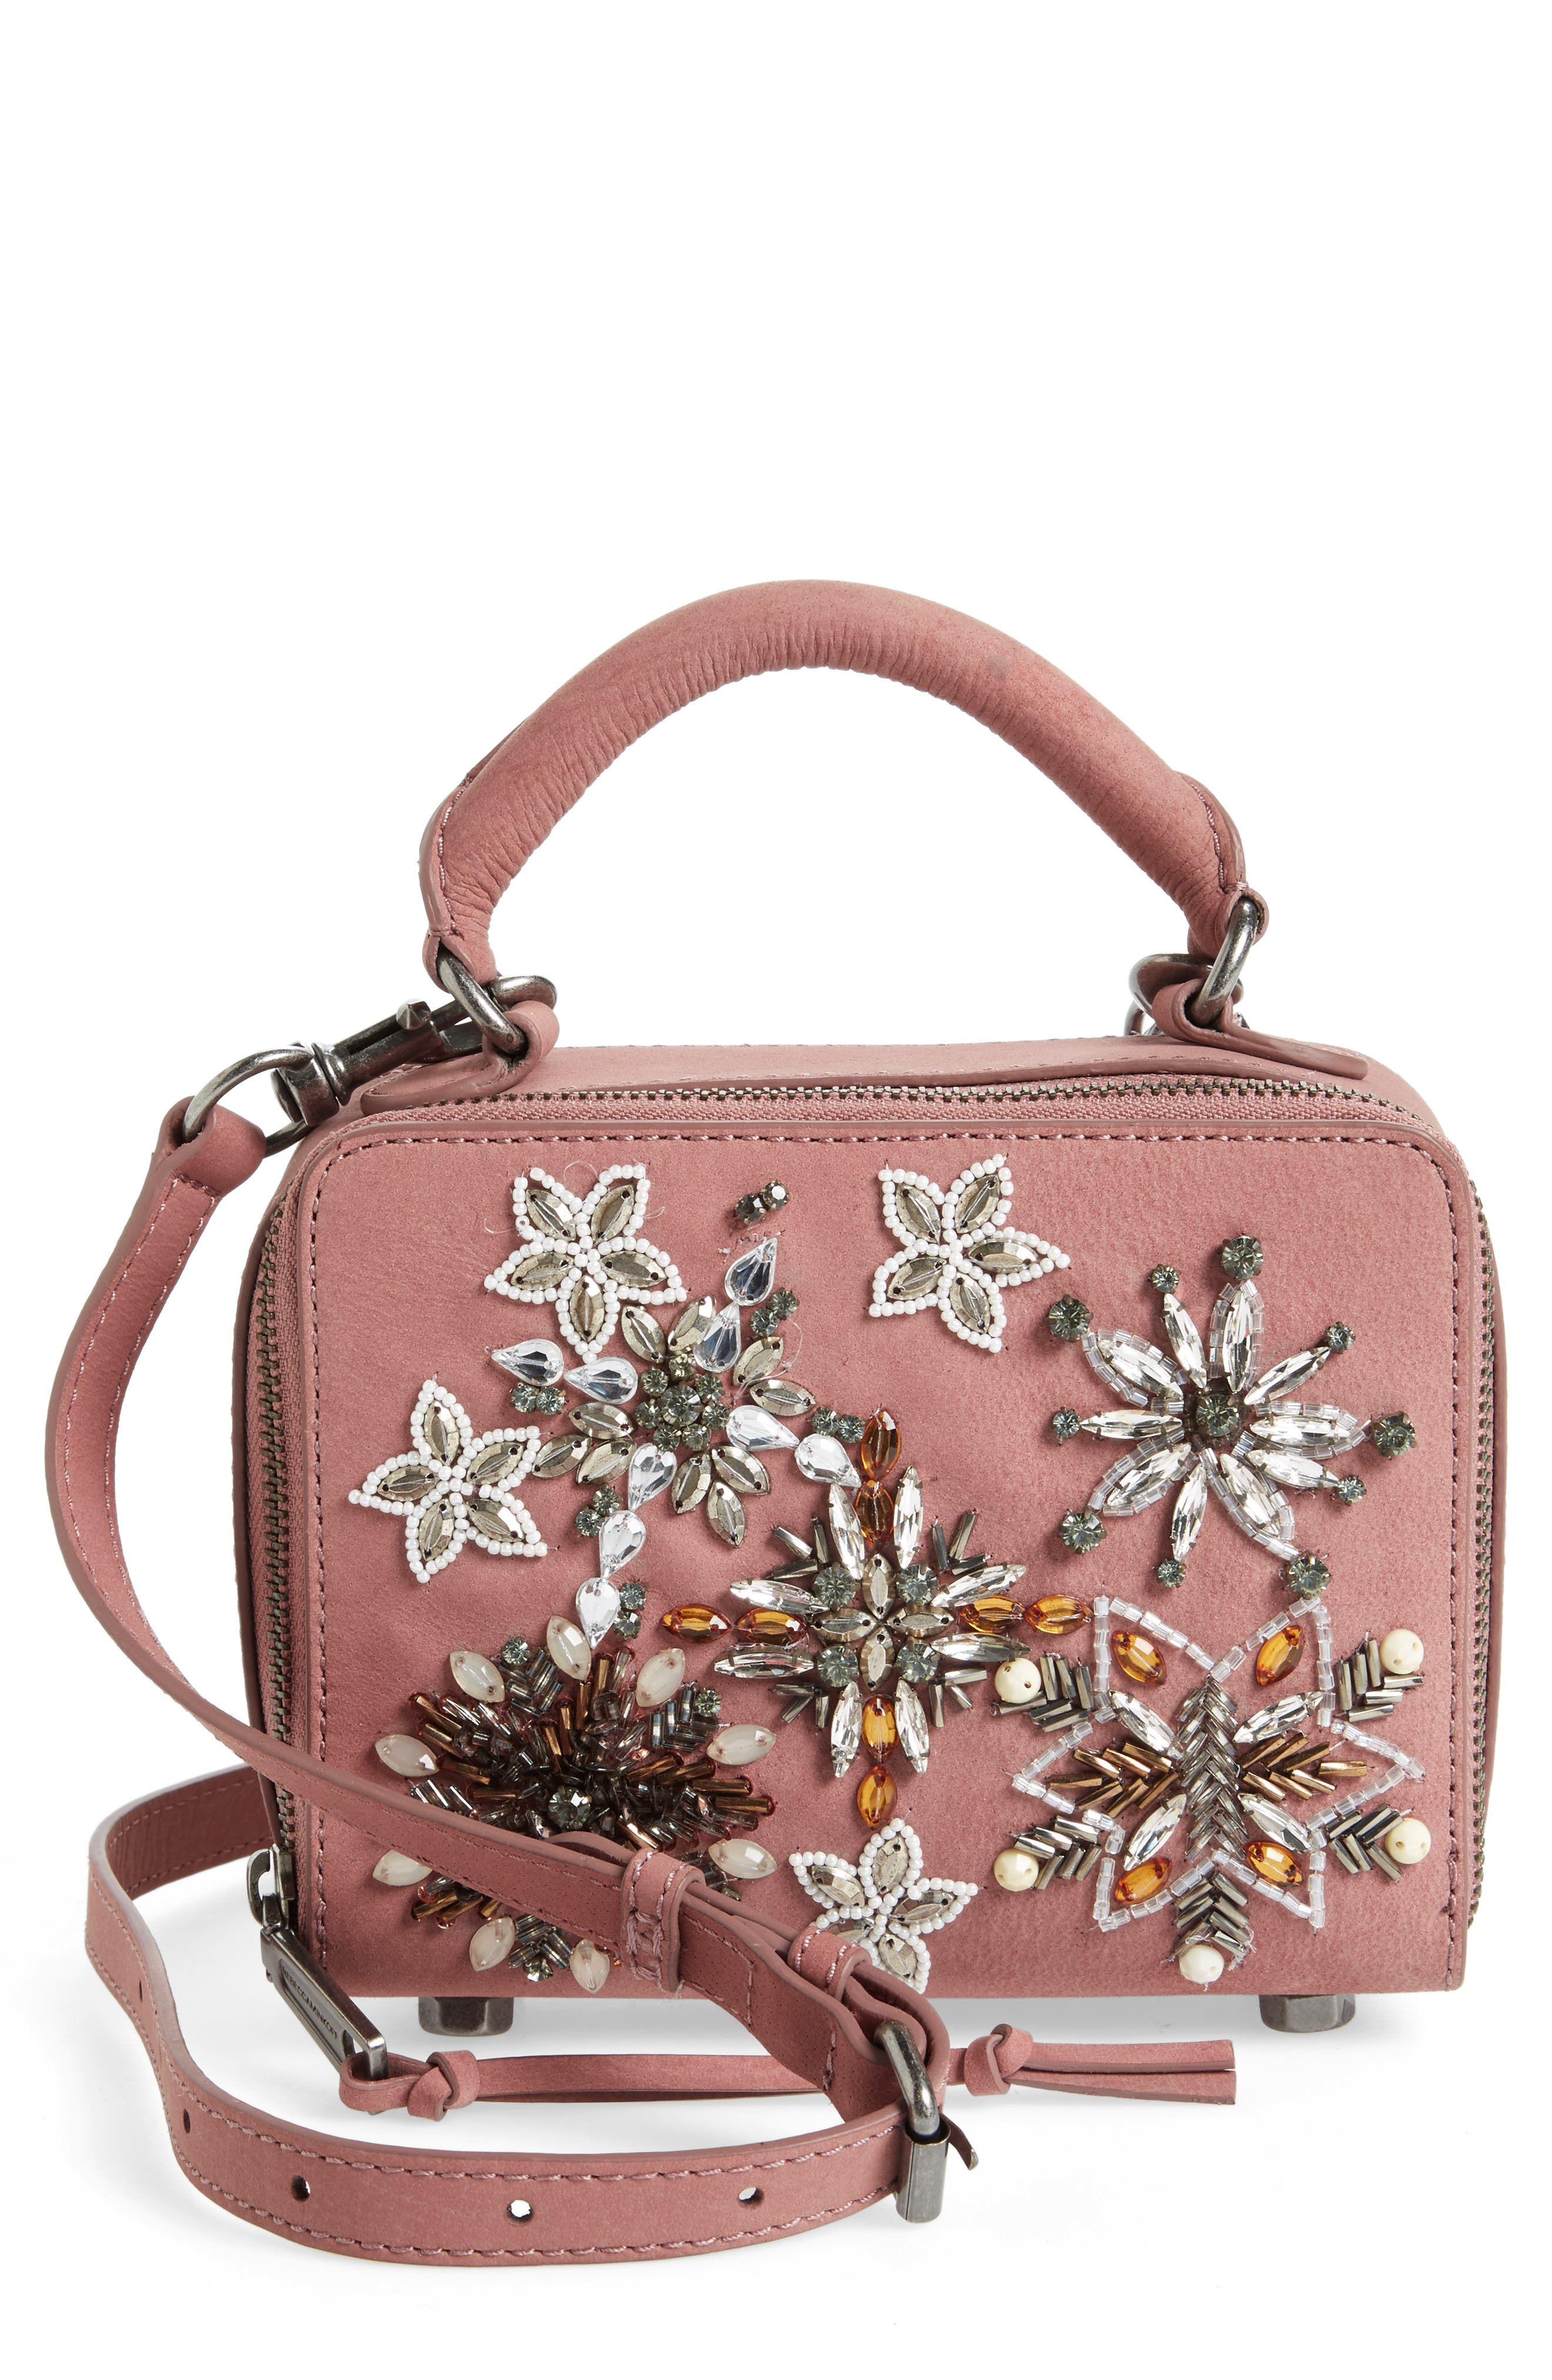 Alternate Image 1 Selected - Rebecca Minkoff Embellished Box Leather Crossbody Bag